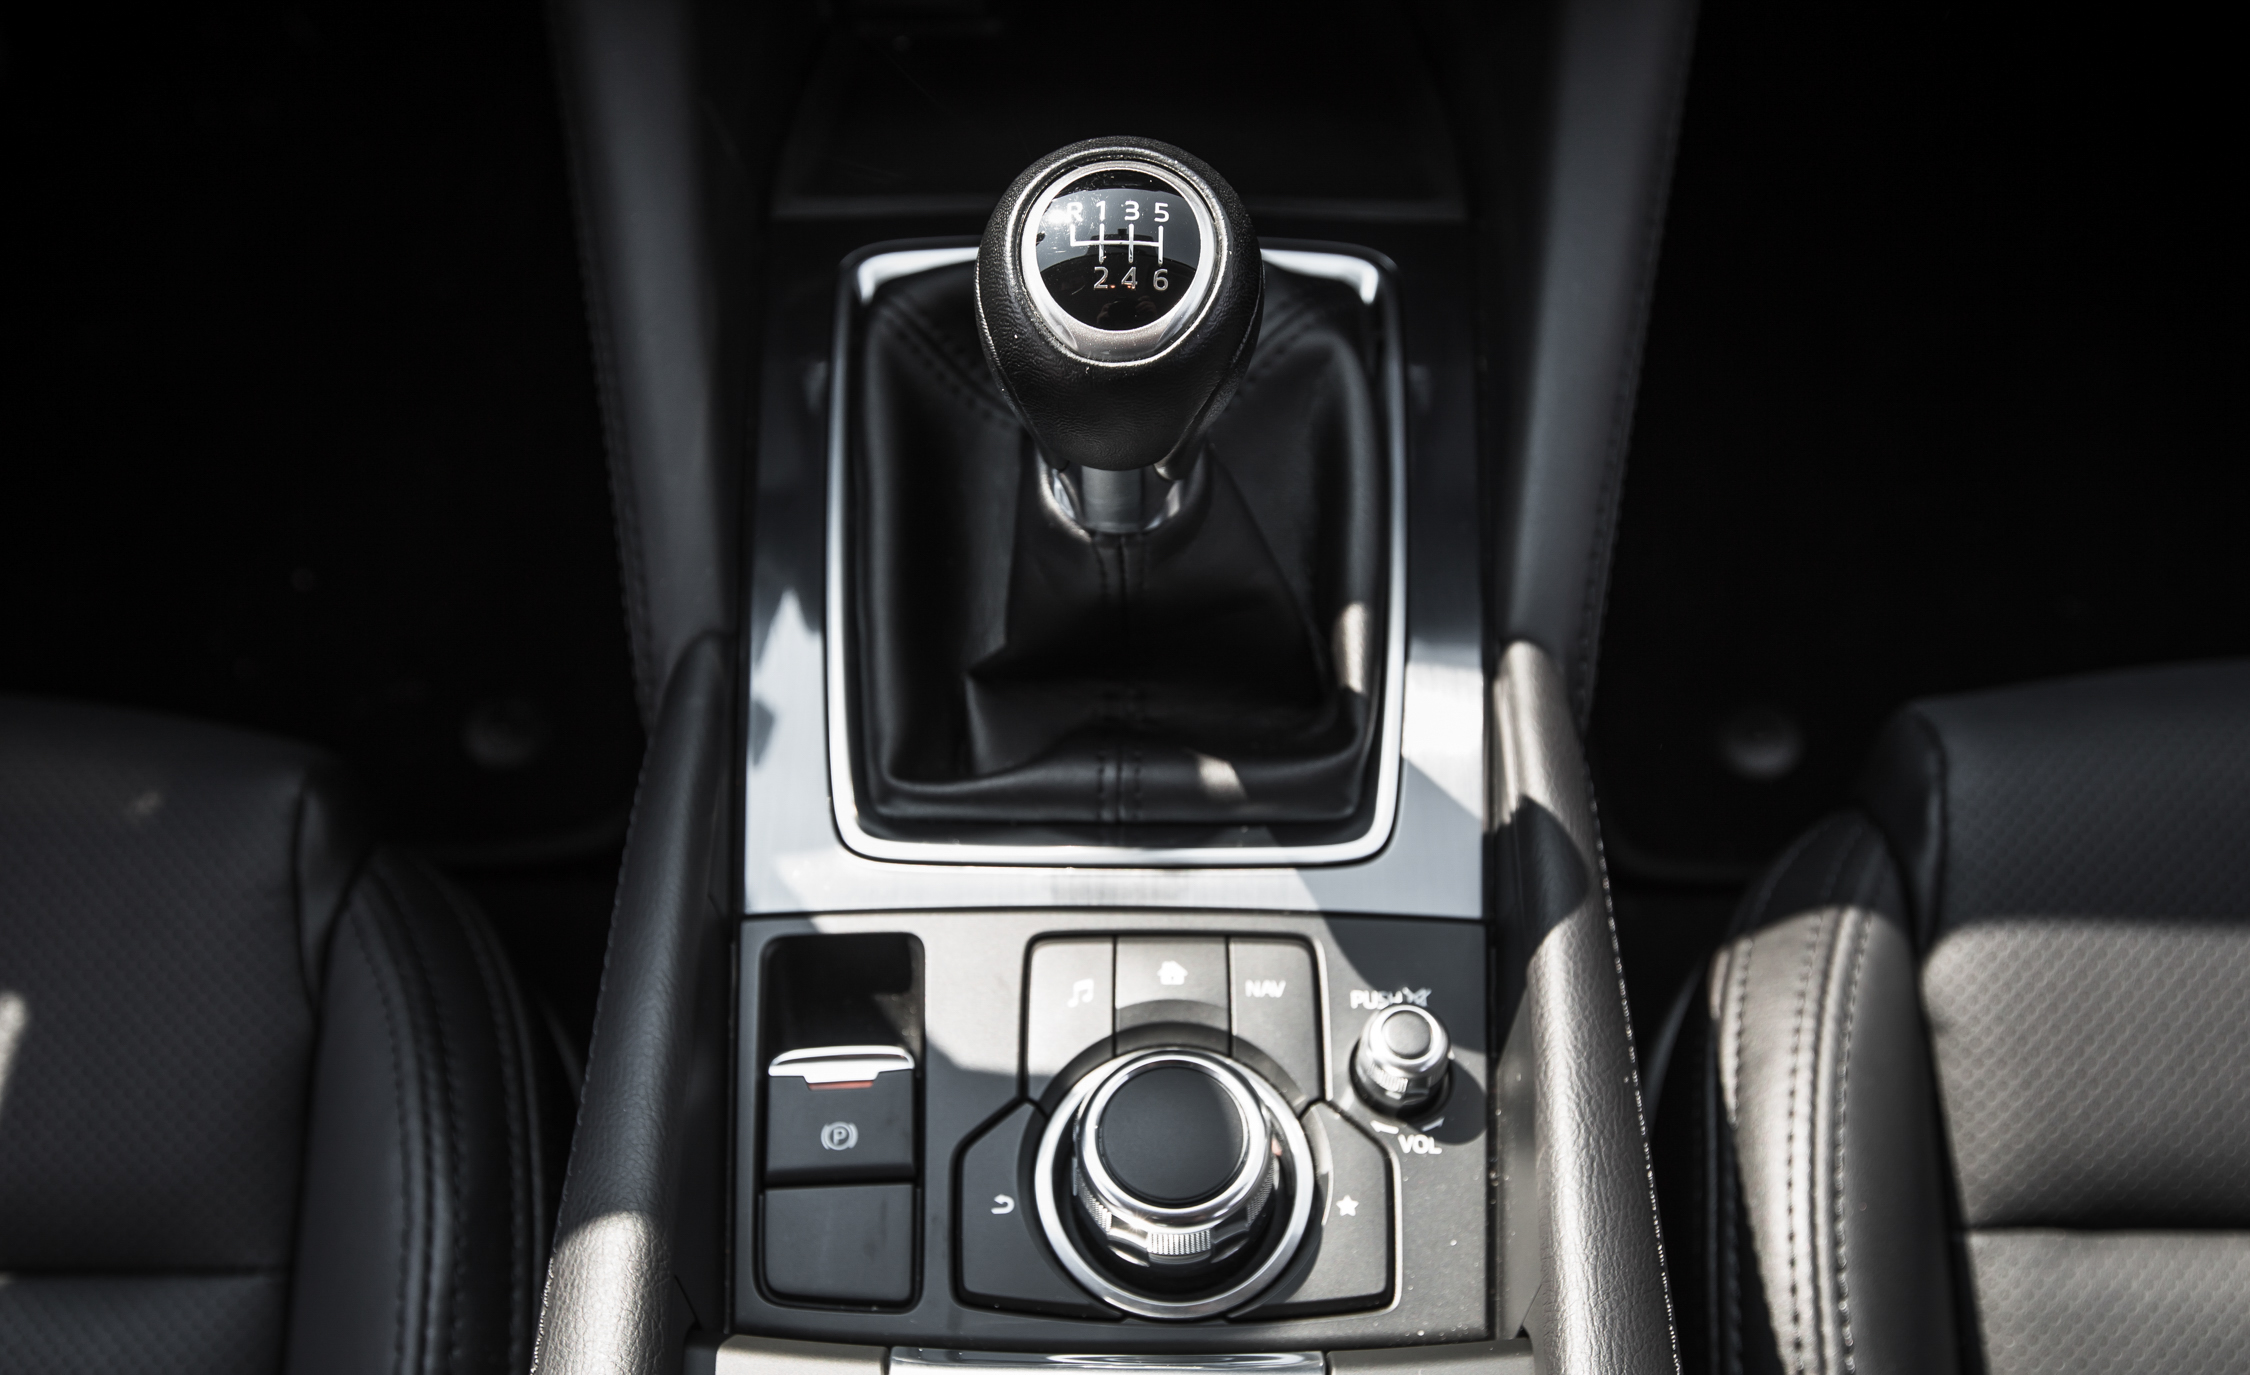 2016 Mazda 6 Touring Interior Gear Shift Knob